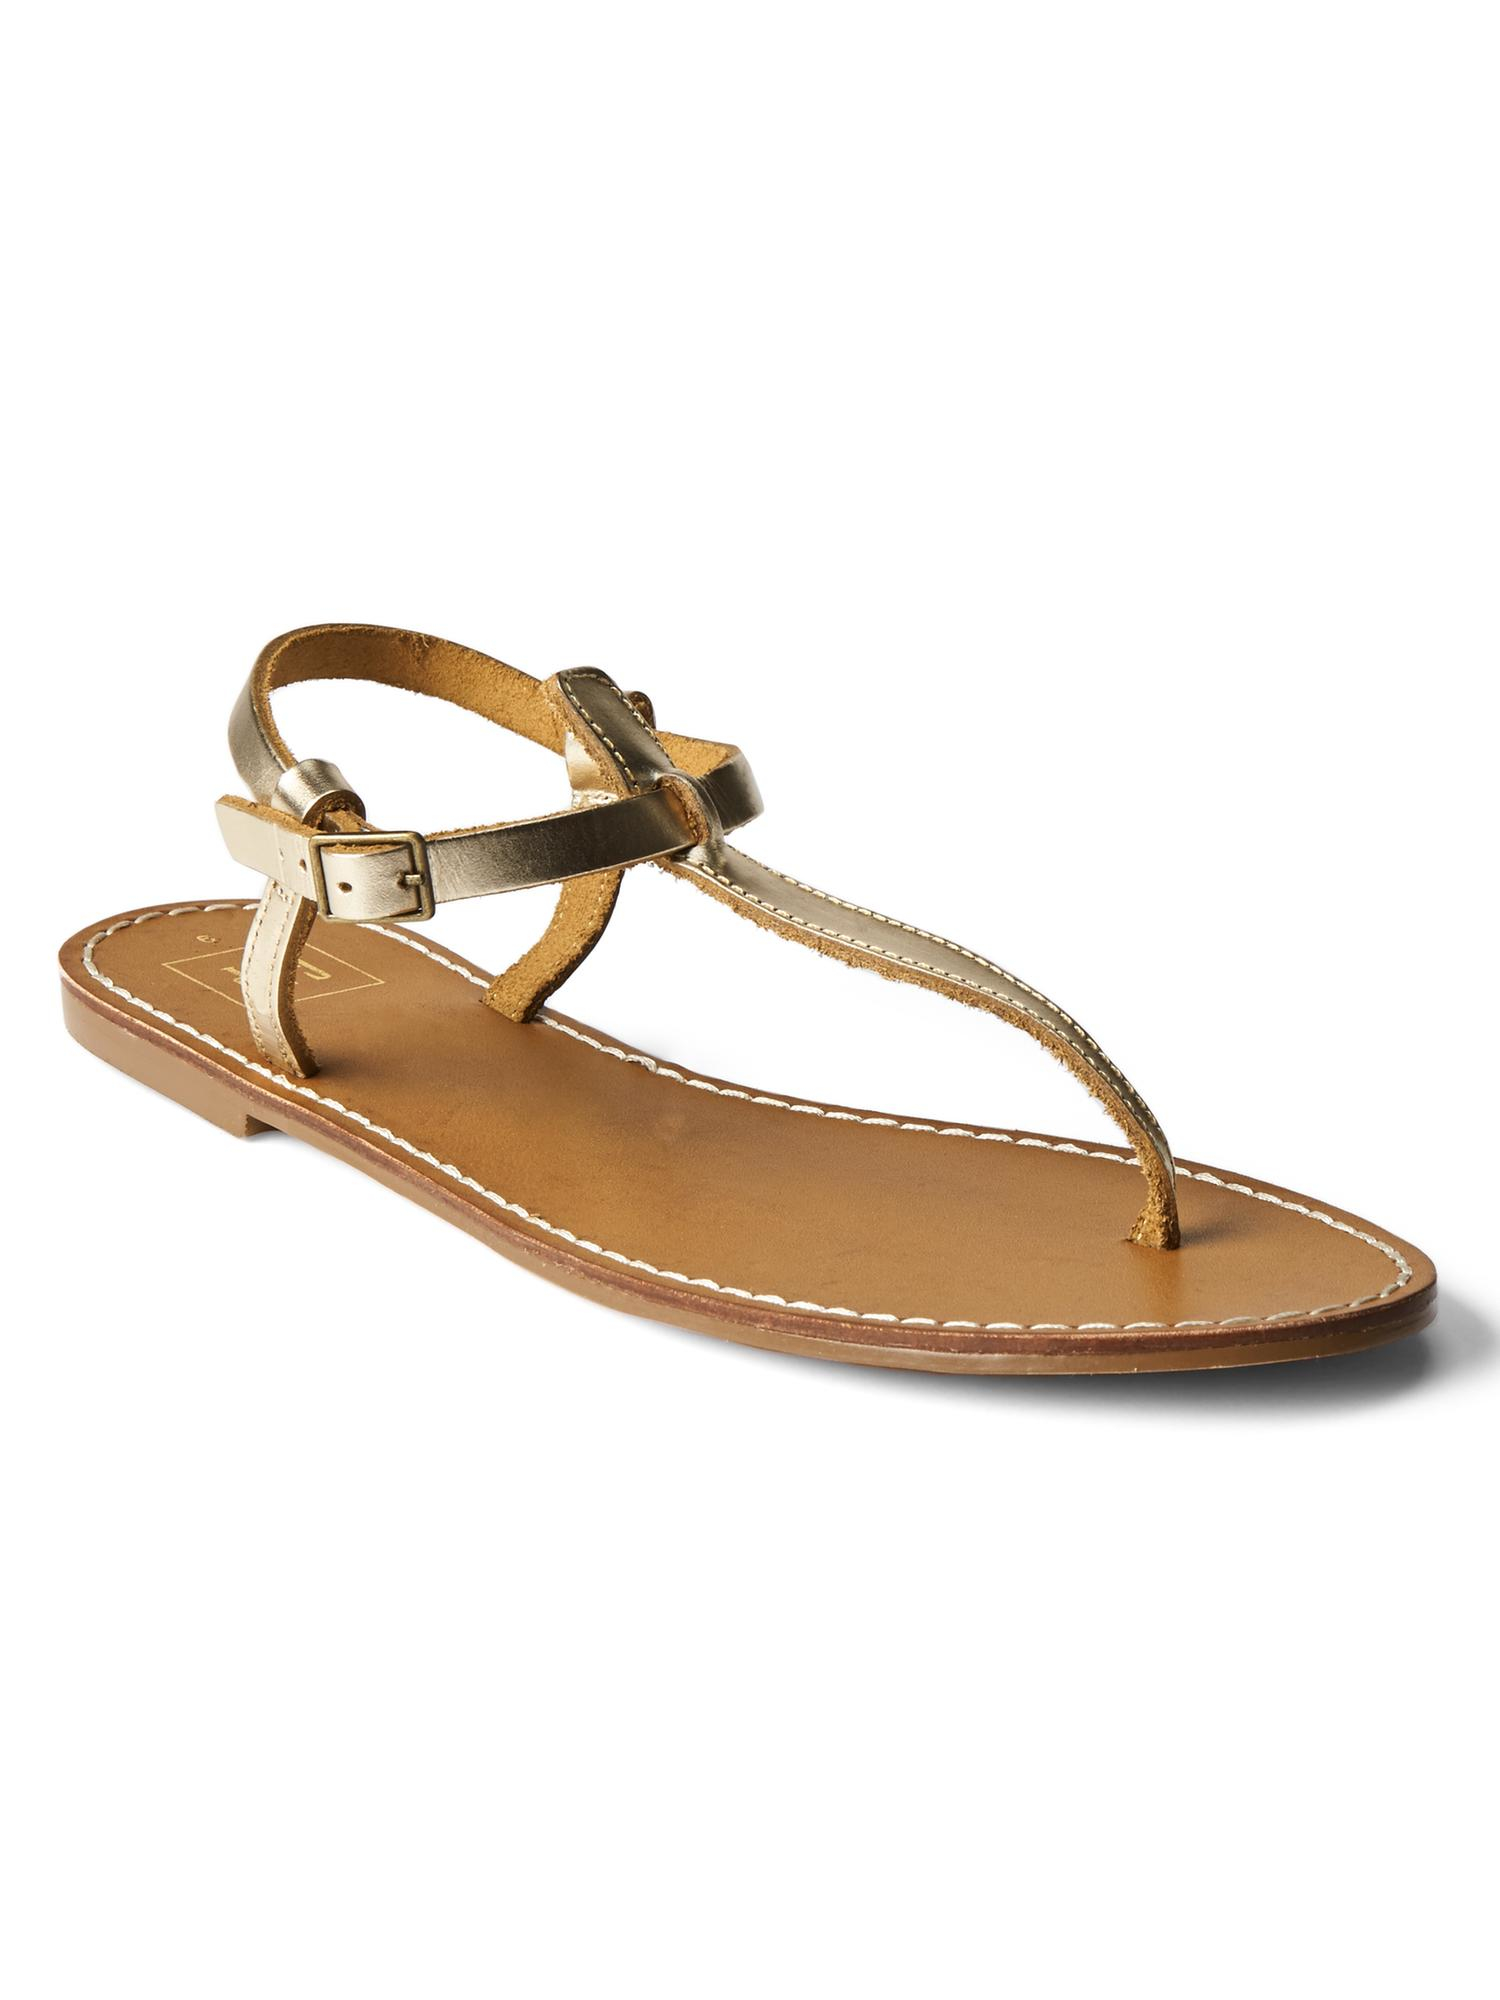 Popular Women Shoes Carvela Sandals Carvela Gap T Bar Sandals Color Details